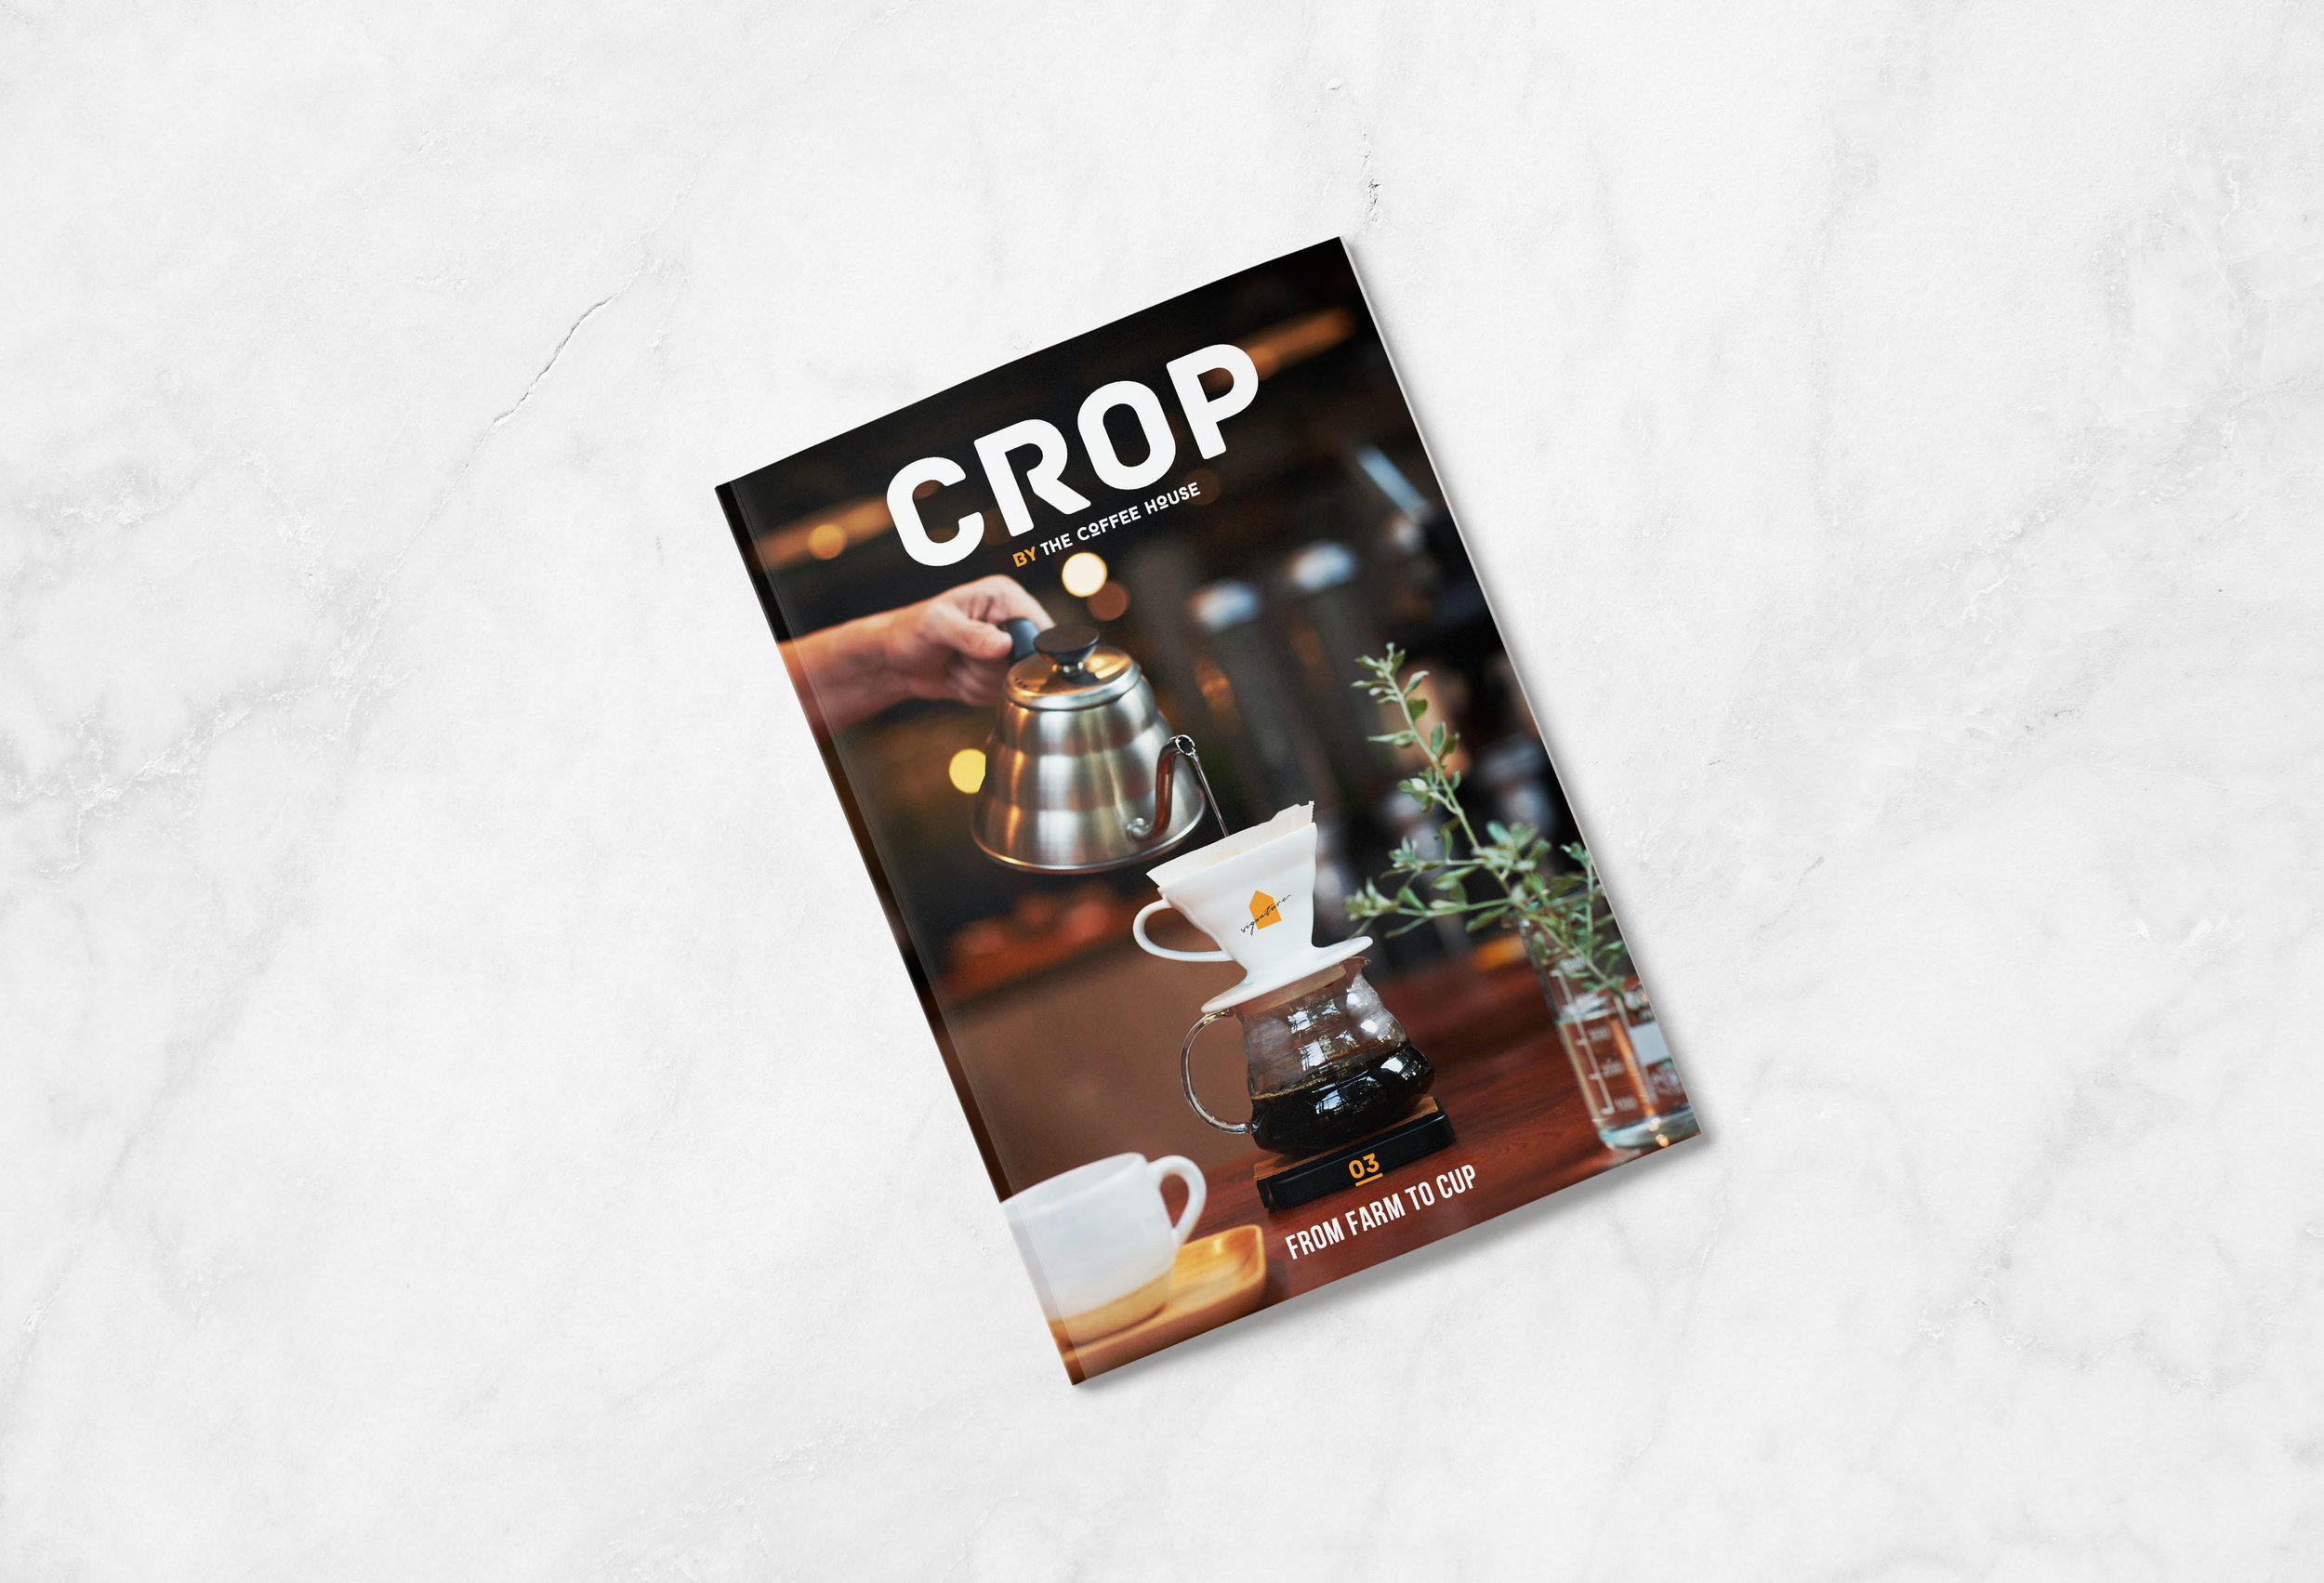 From farm to cup - Crop by The Coffee House